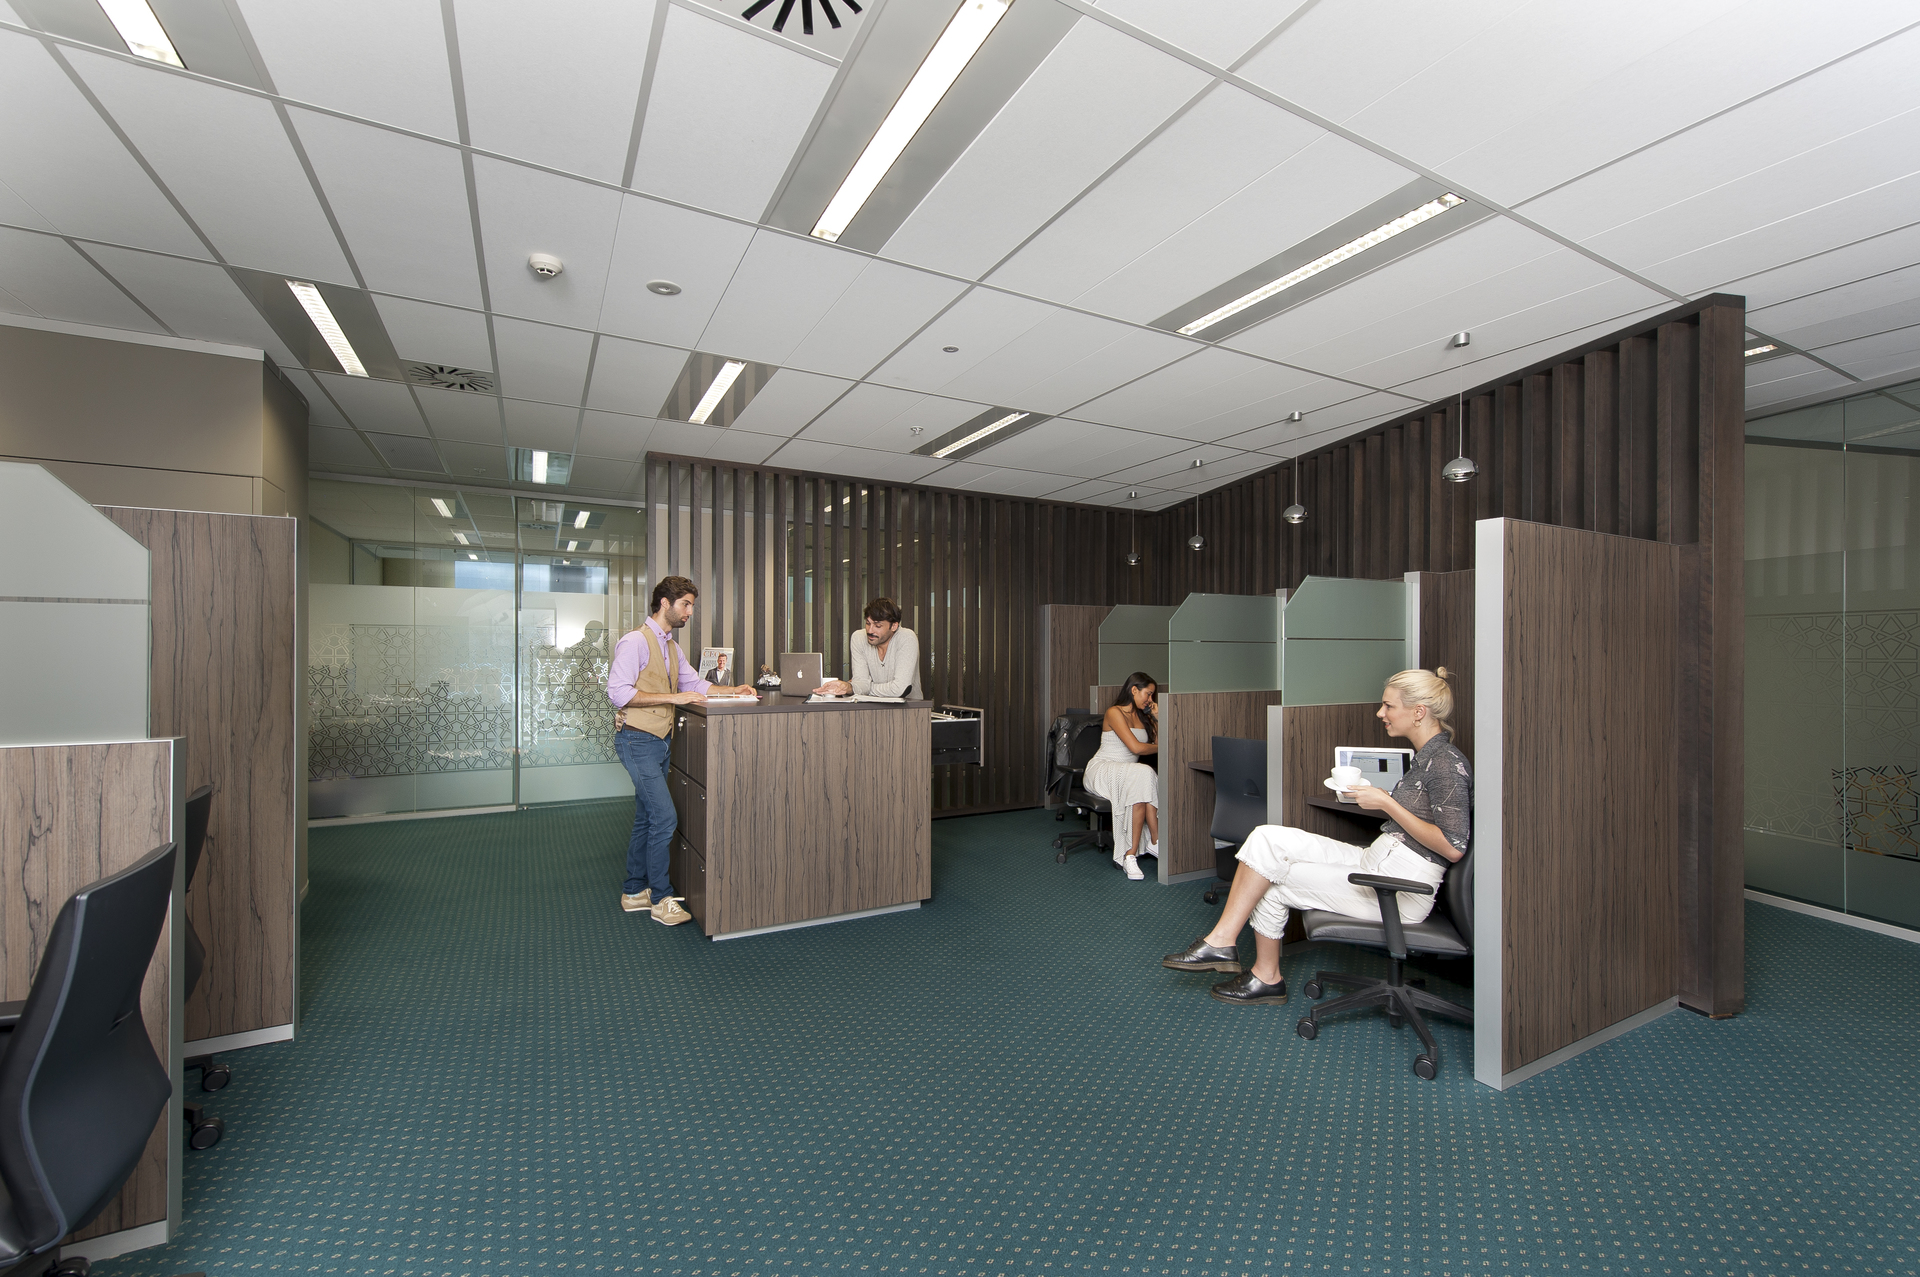 2-PERSON OFFICES LOCATED IN PARRAMATTA